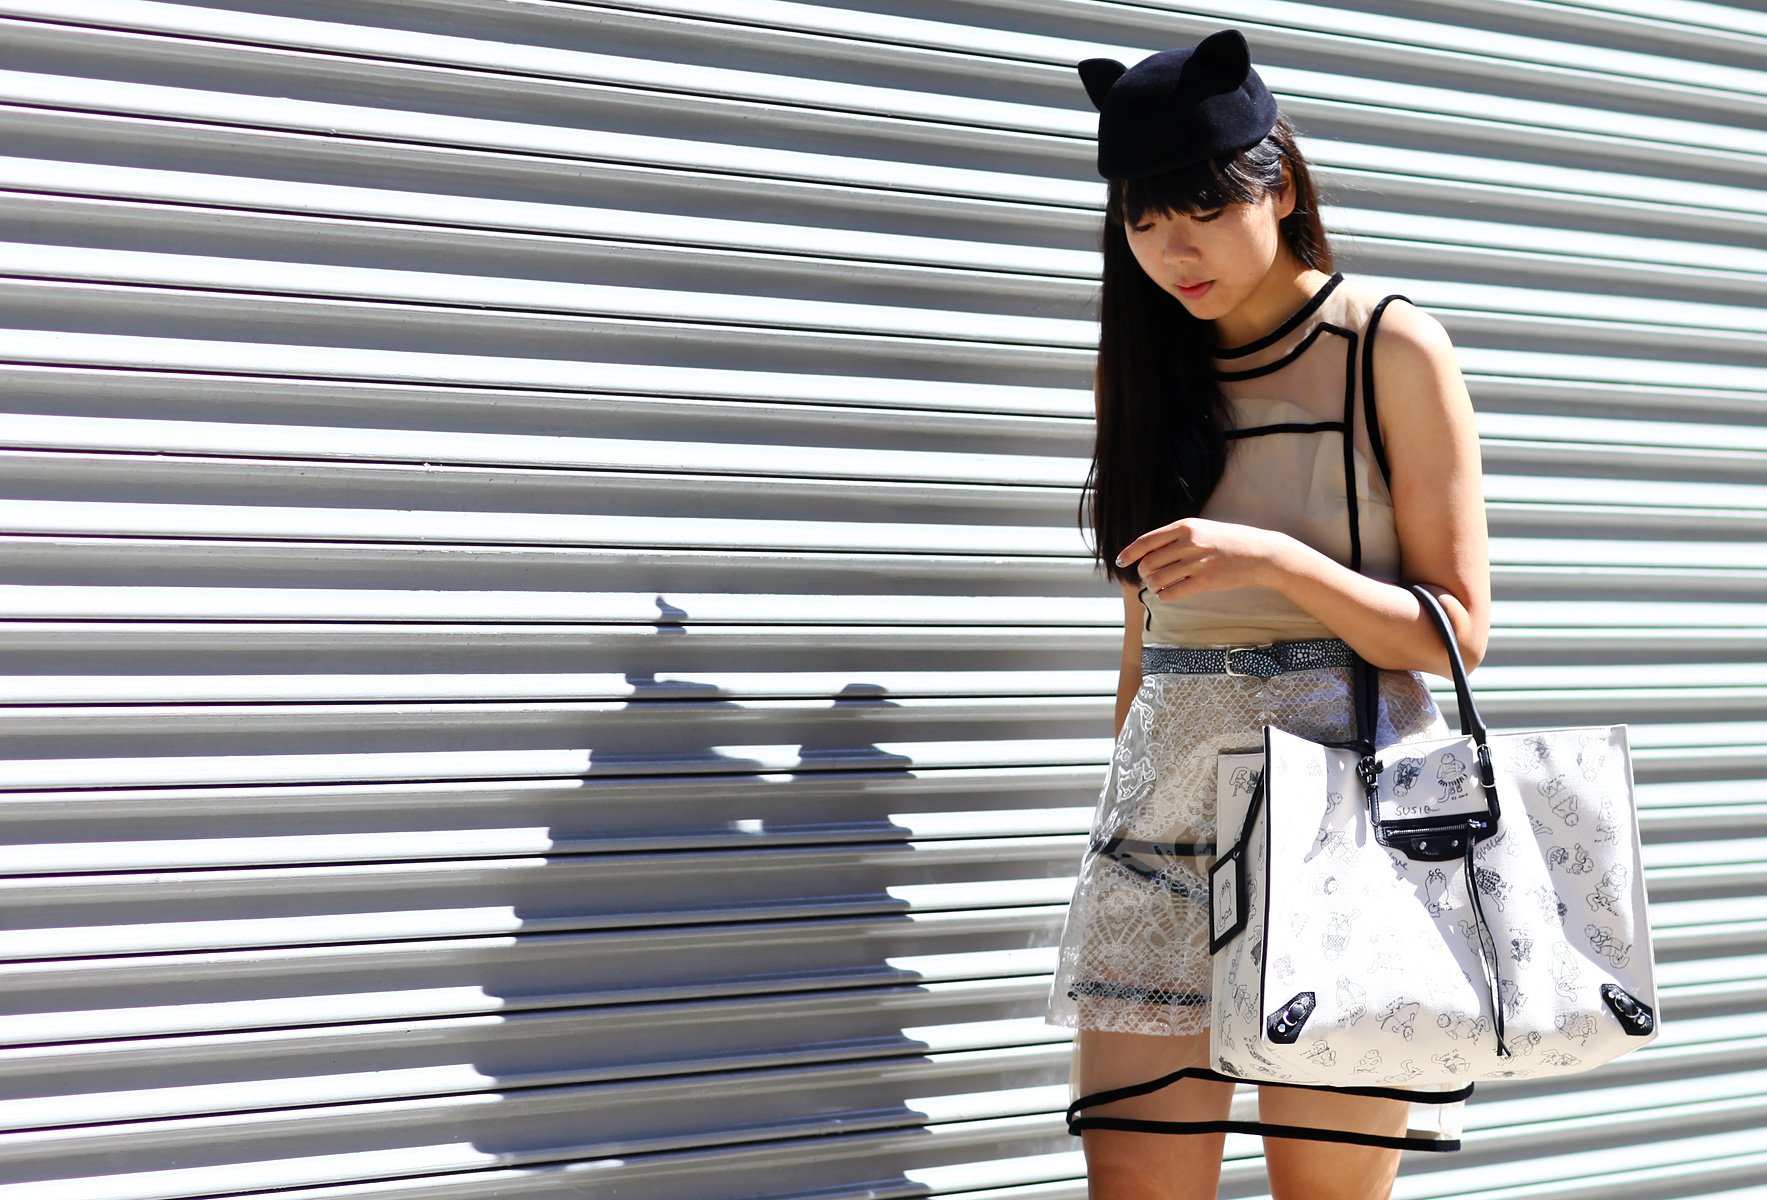 Street Style at New York Fashion Week Spring 2013 - Susie Bubble